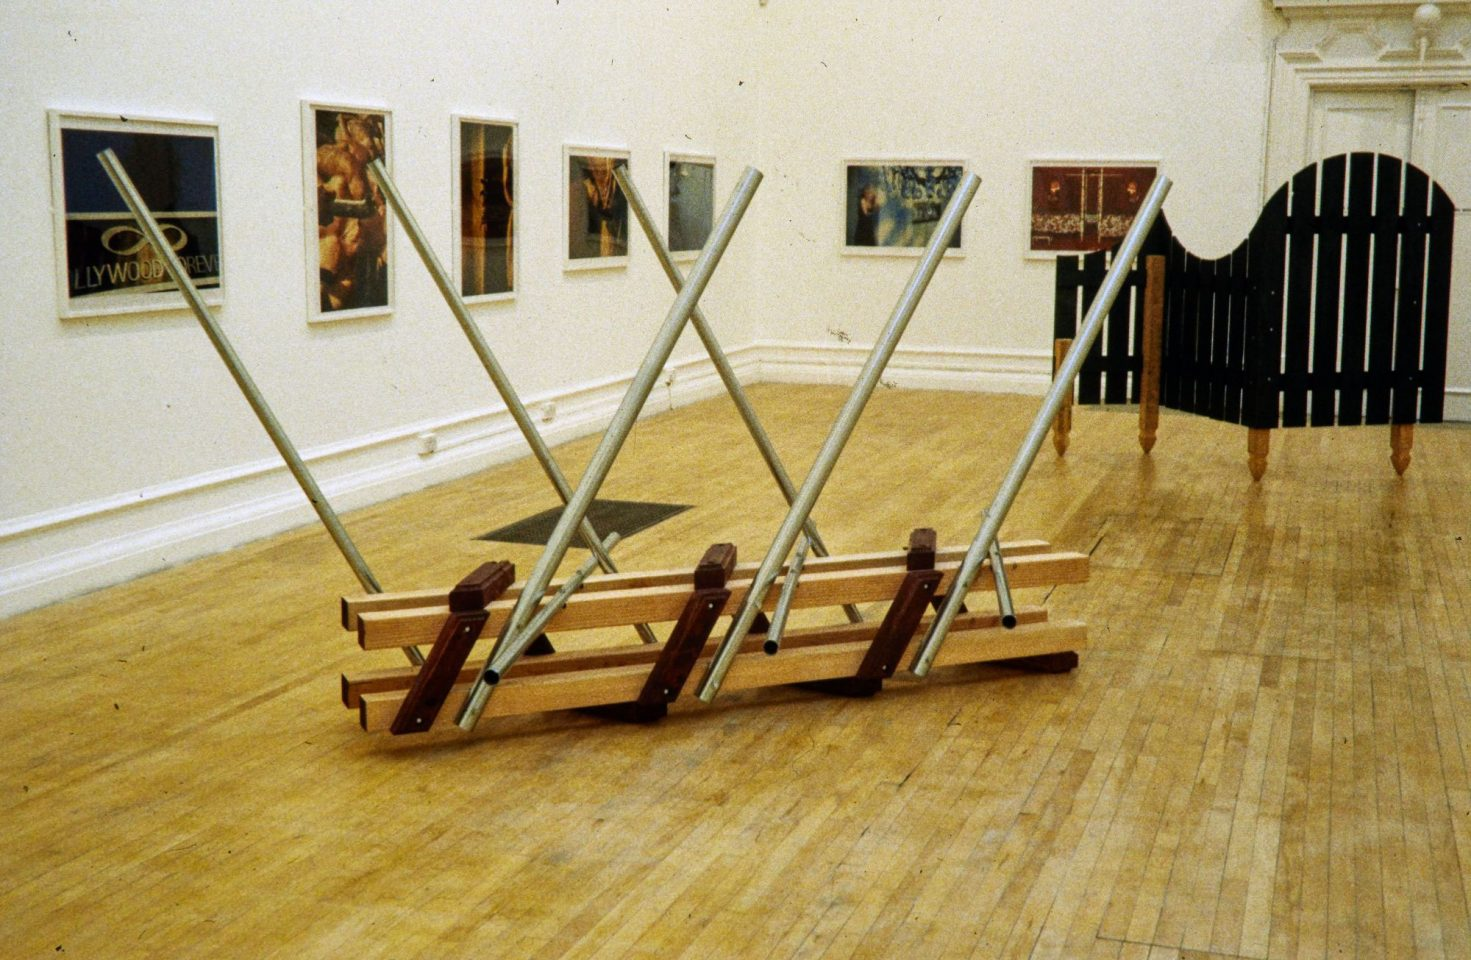 Installation view from 1999 exhibition Drive By: New Art from LA.